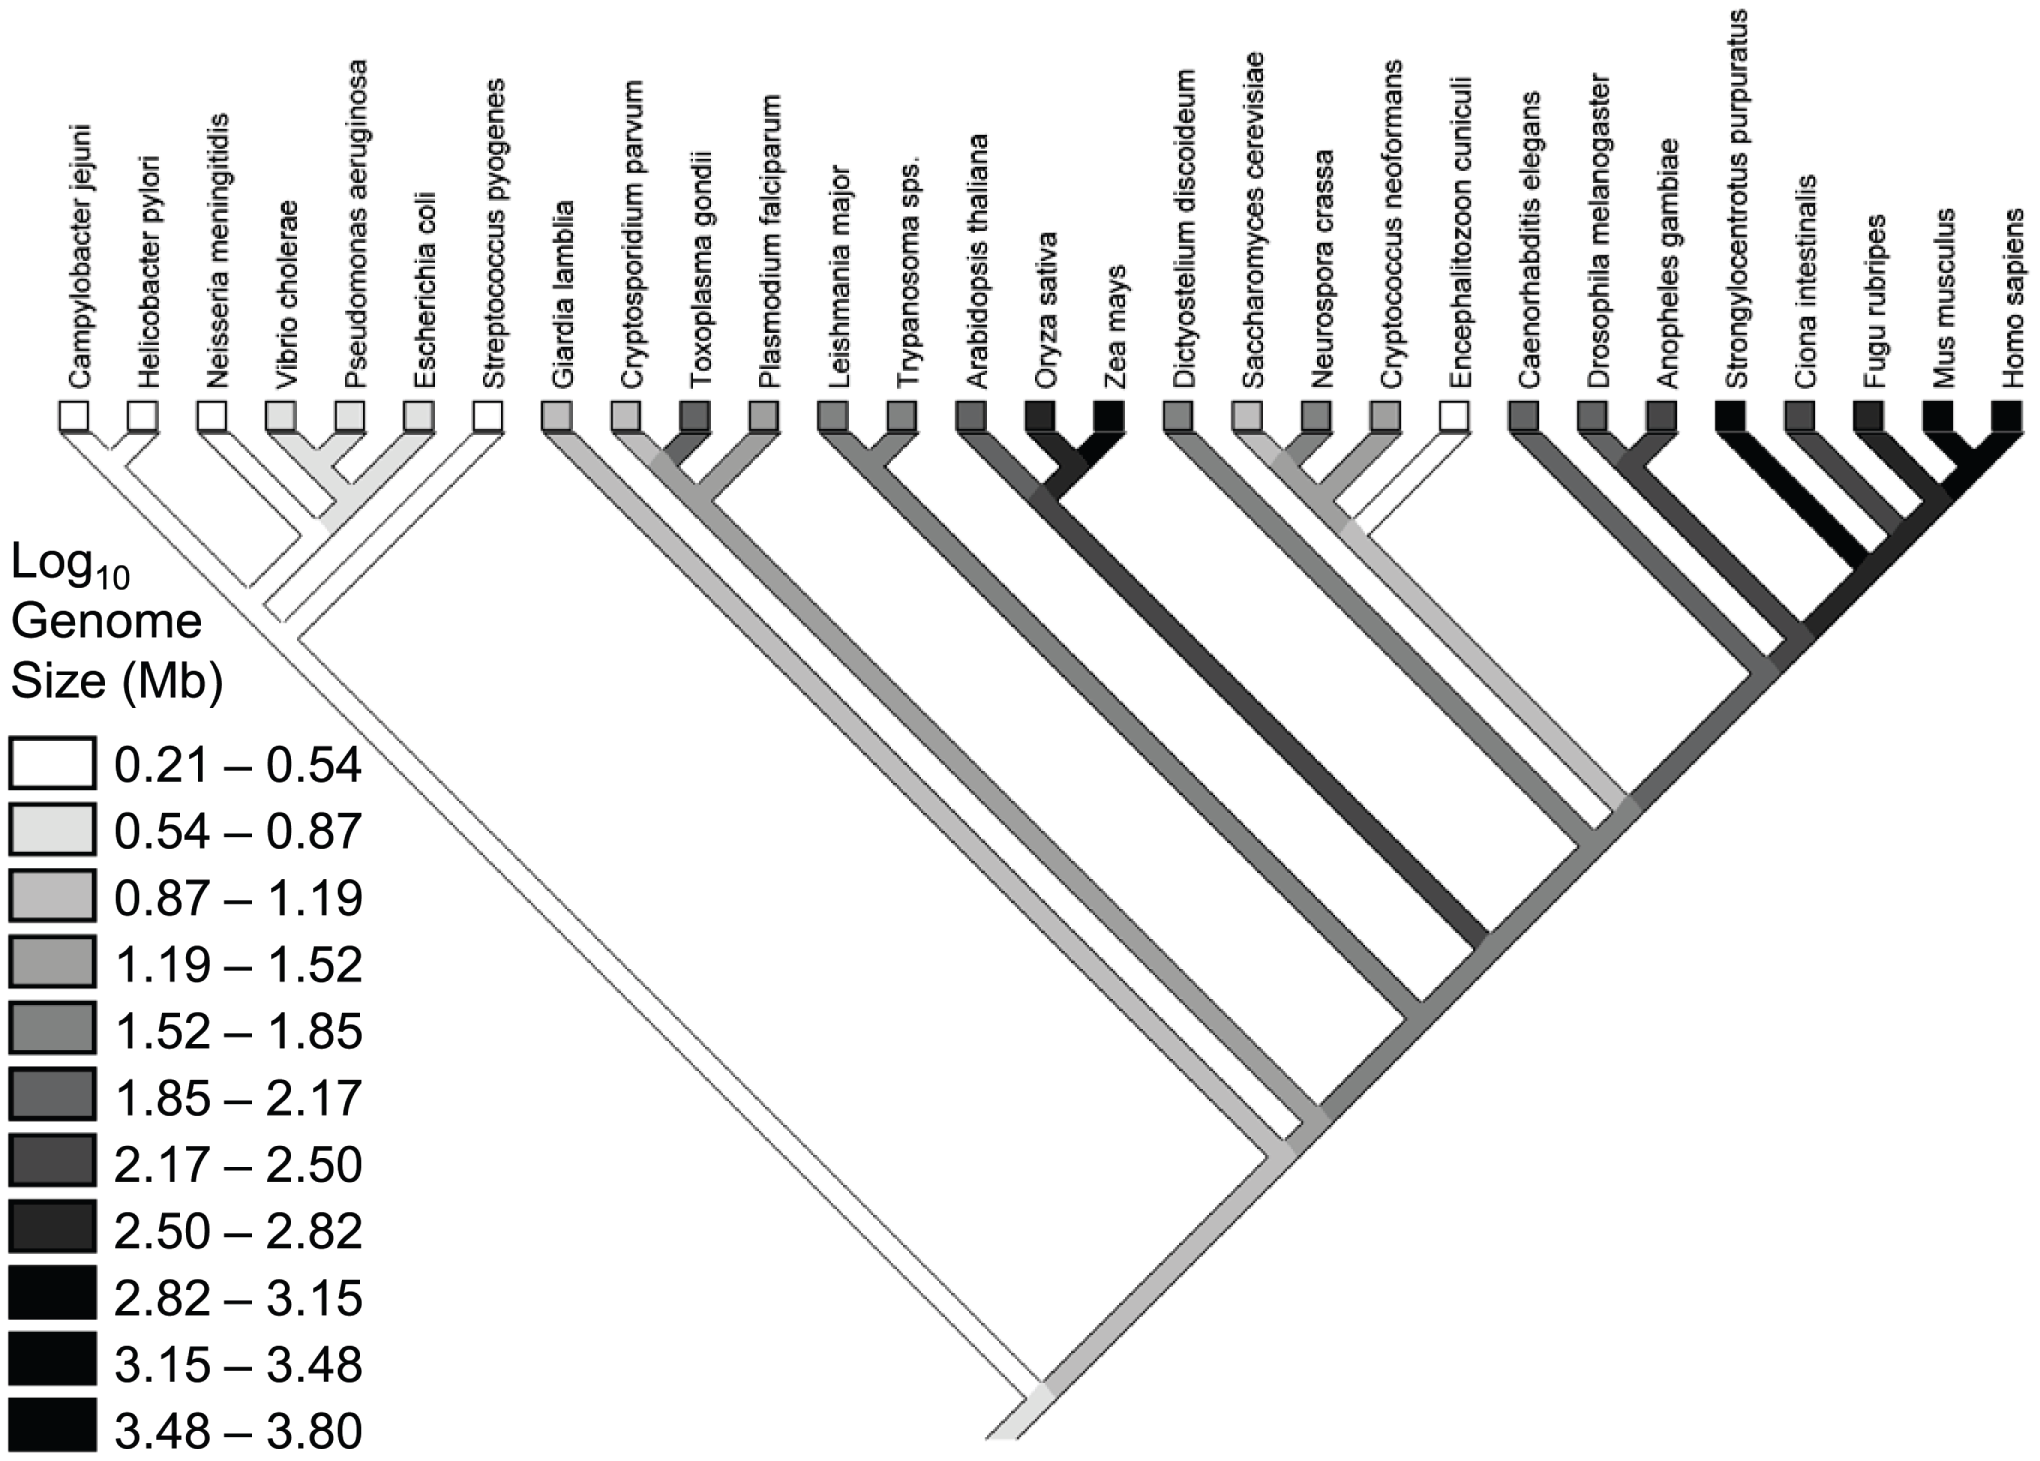 Phylogeny for the species in the Lynch &amp; Conery dataset <em class=&quot;ref&quot;>[<b>7</b>]</em>, with a reconstruction of genome sizes.